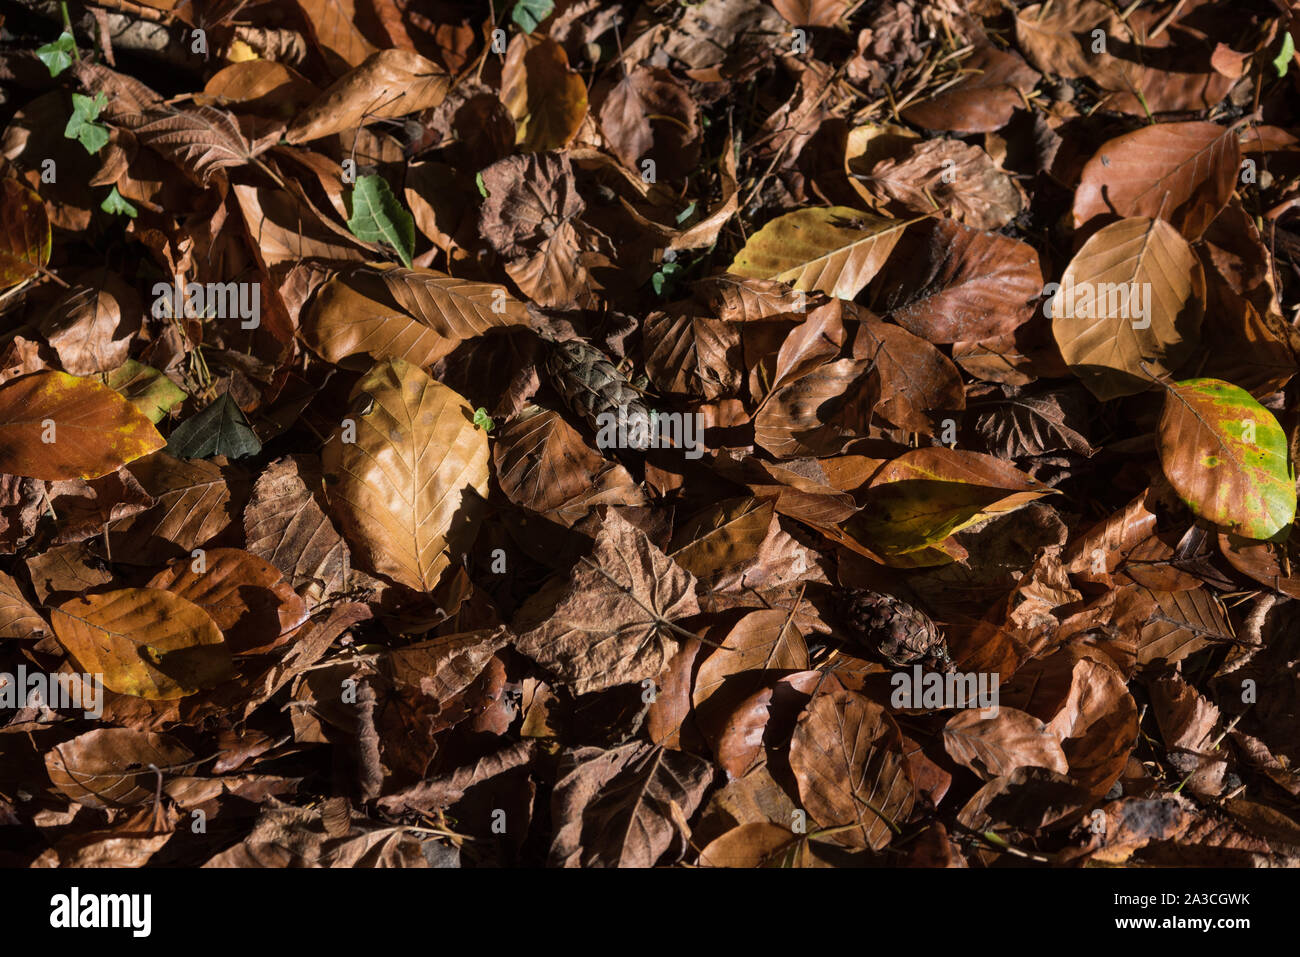 Autumn leaves on floor abstract image Stock Photo